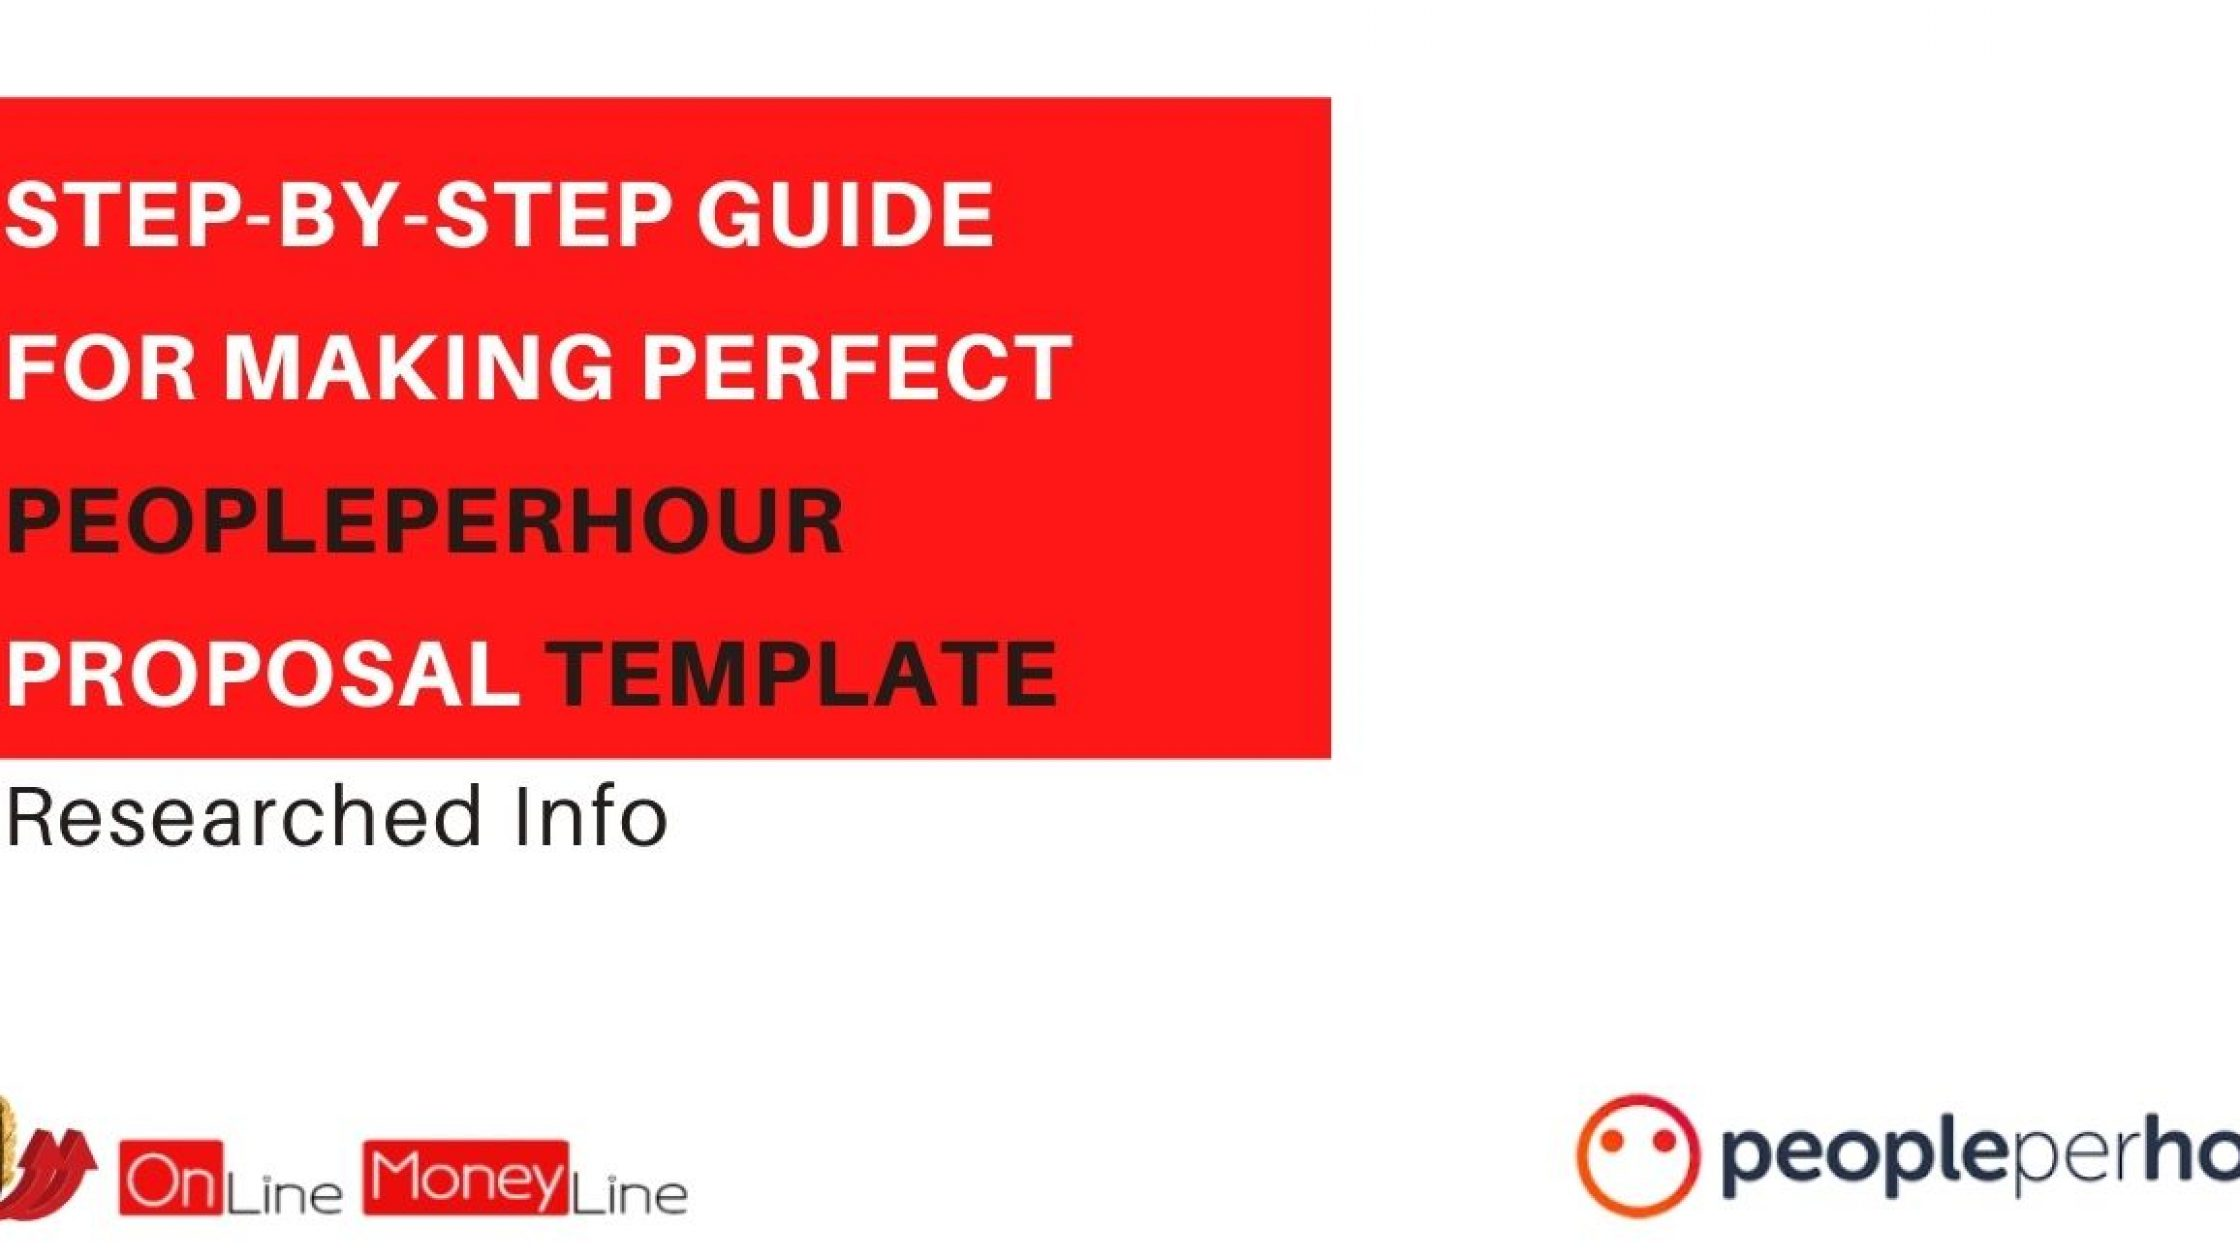 Step-By-Step Guide For Making Perfect PeoplePerHour Proposal Template